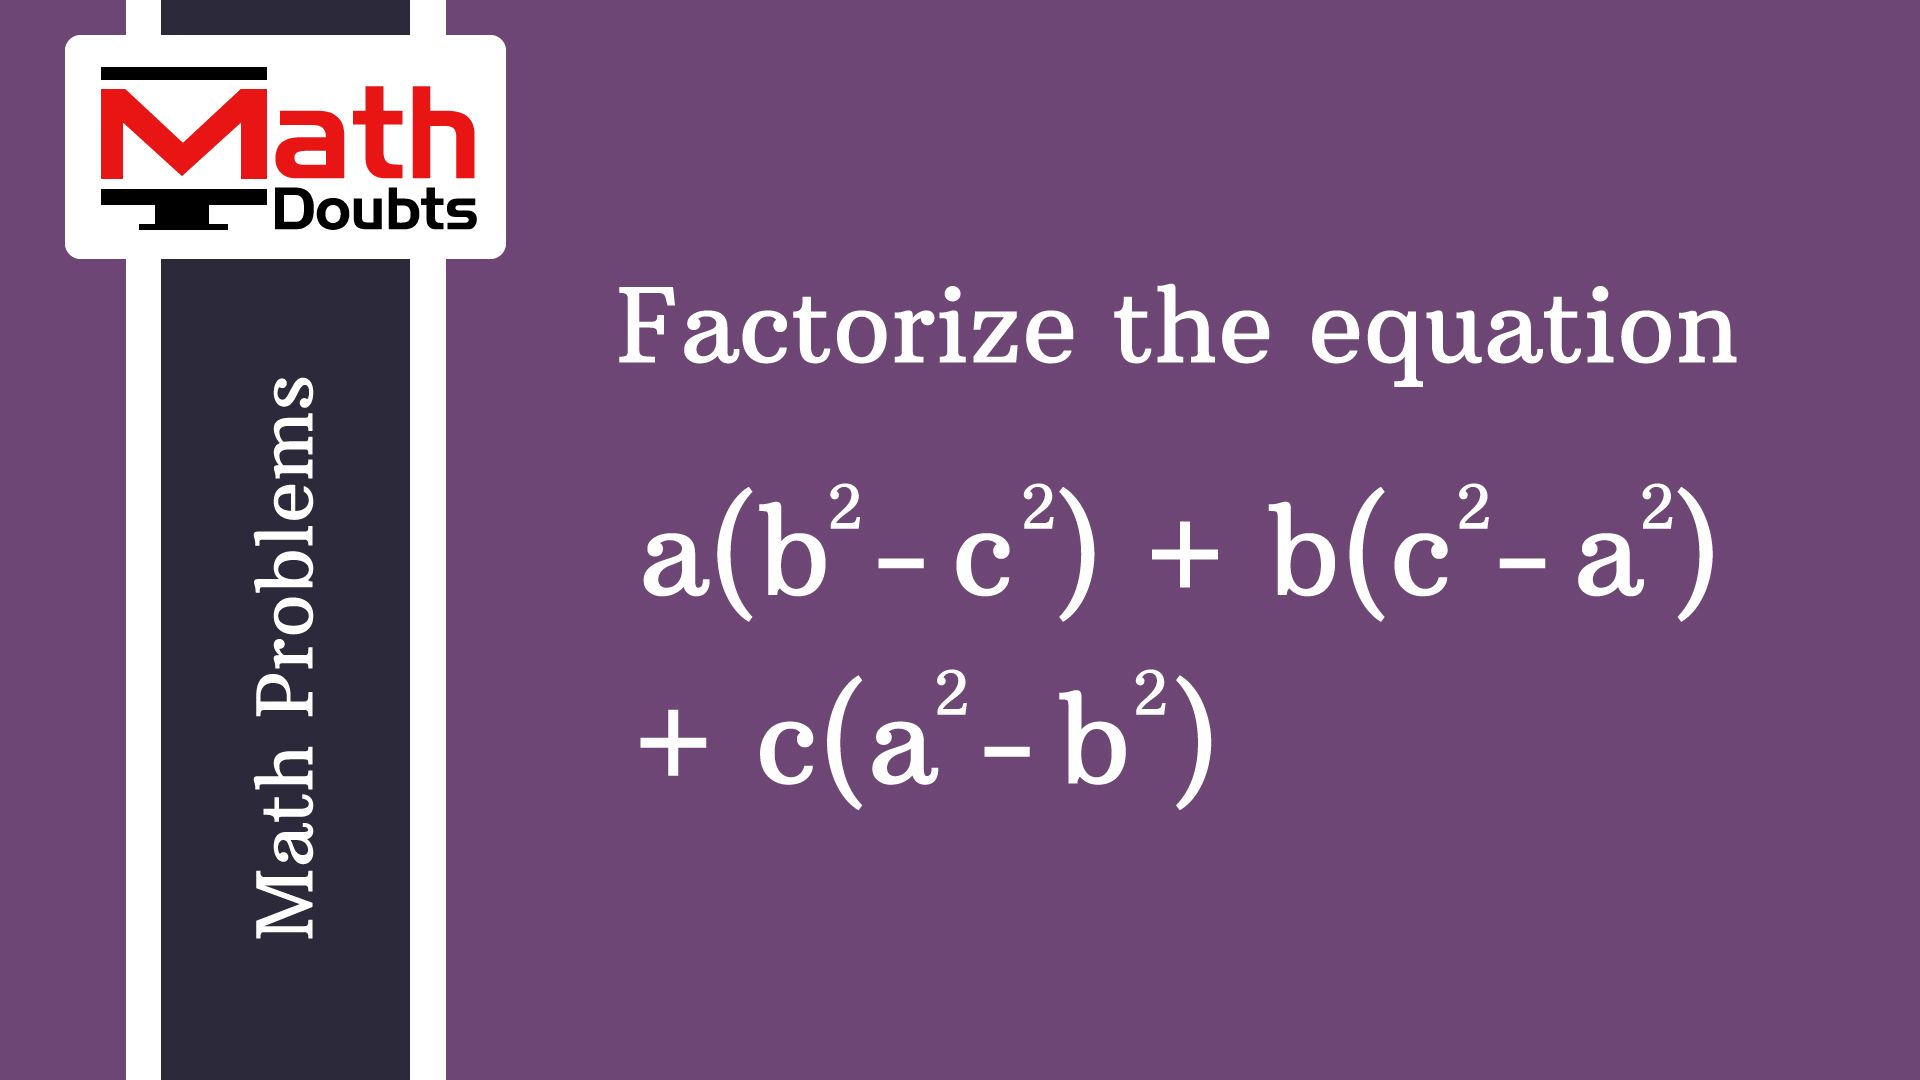 Learn How To Factorize The Algebraic Equation A B C B C A C A B And Find The Solution In Alg Algebra Equations Algebraic Expressions Algebra